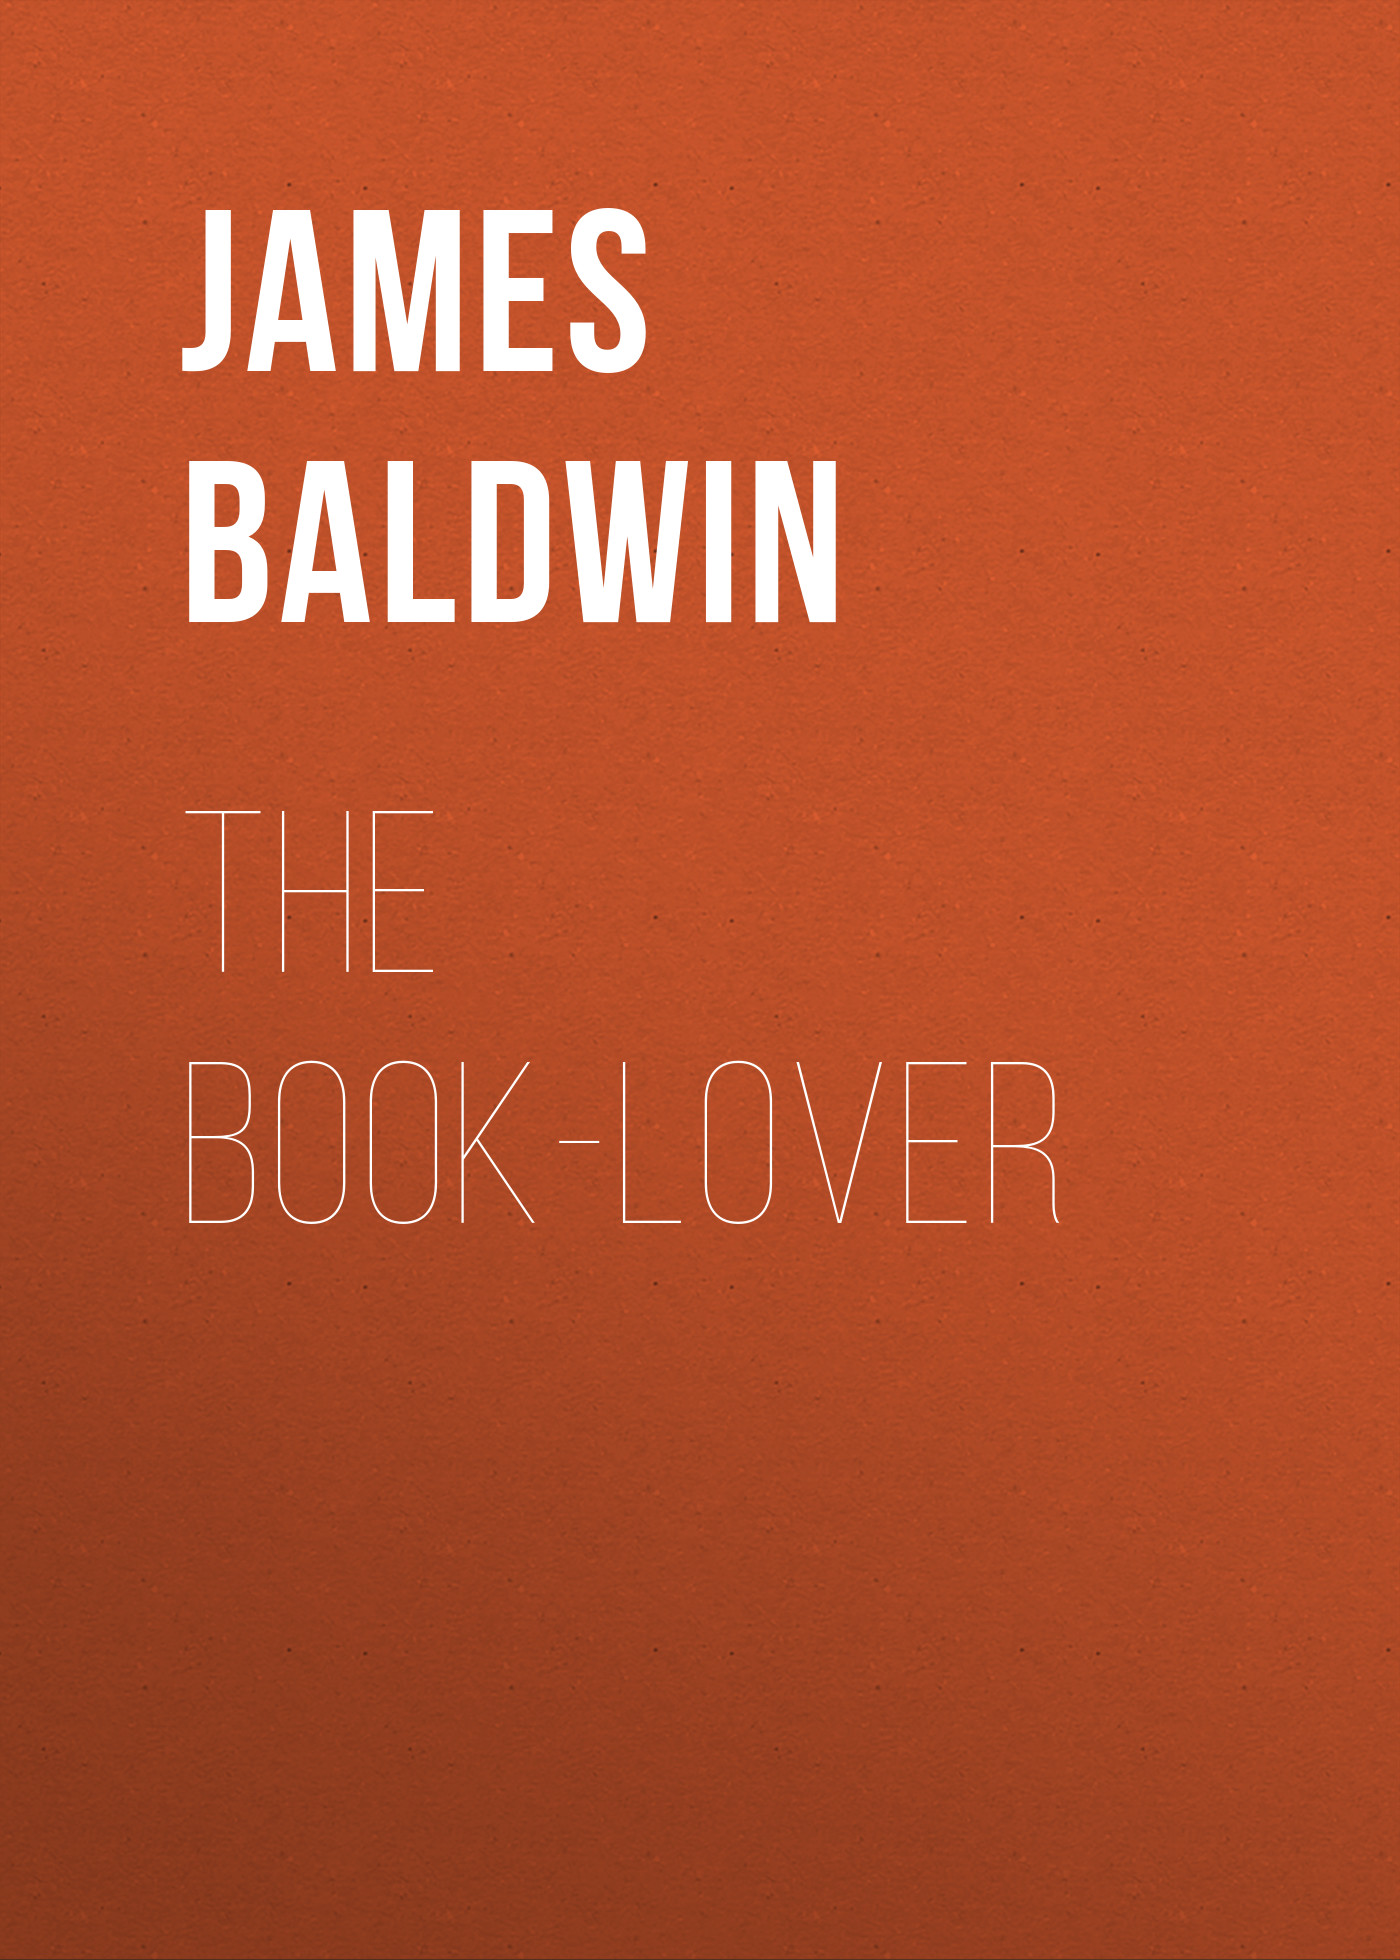 Baldwin James The Book-lover alec baldwin